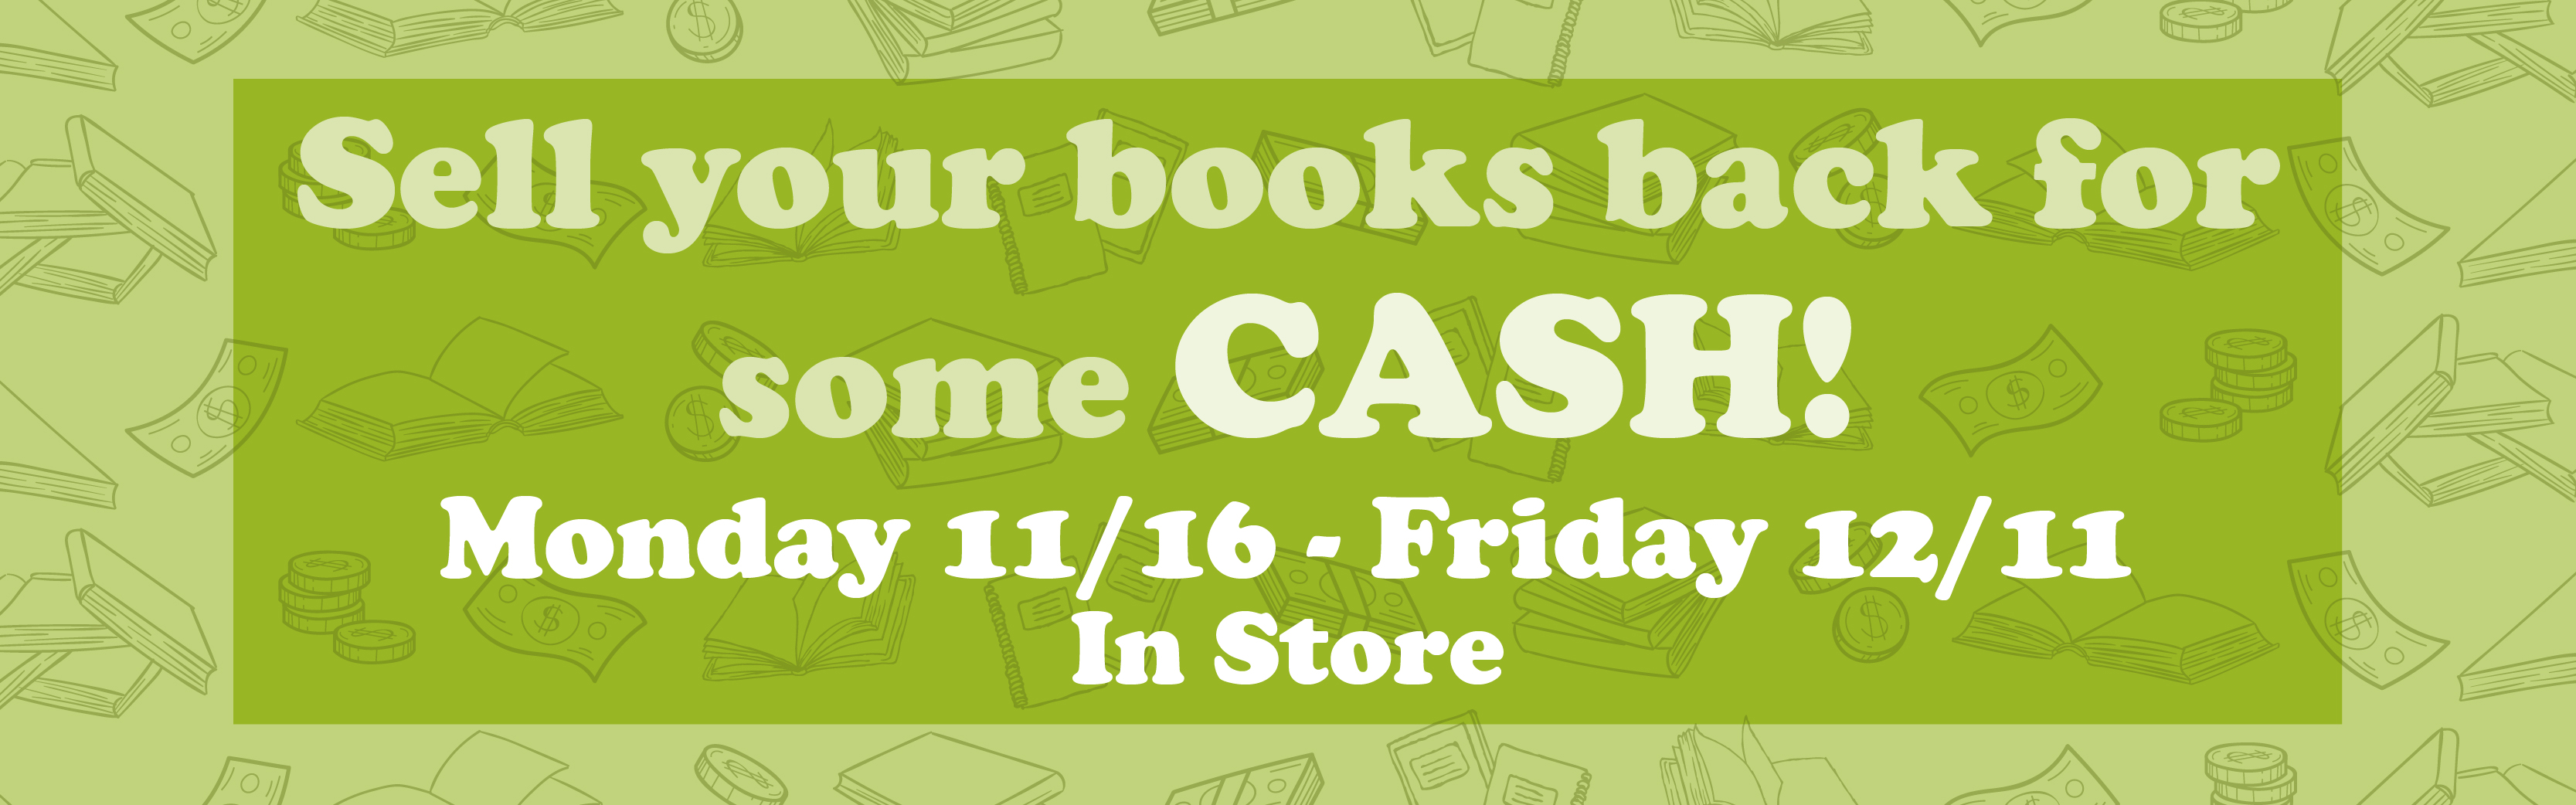 Sell your books back for some CASH! 11/16 - 12/11 in-store.